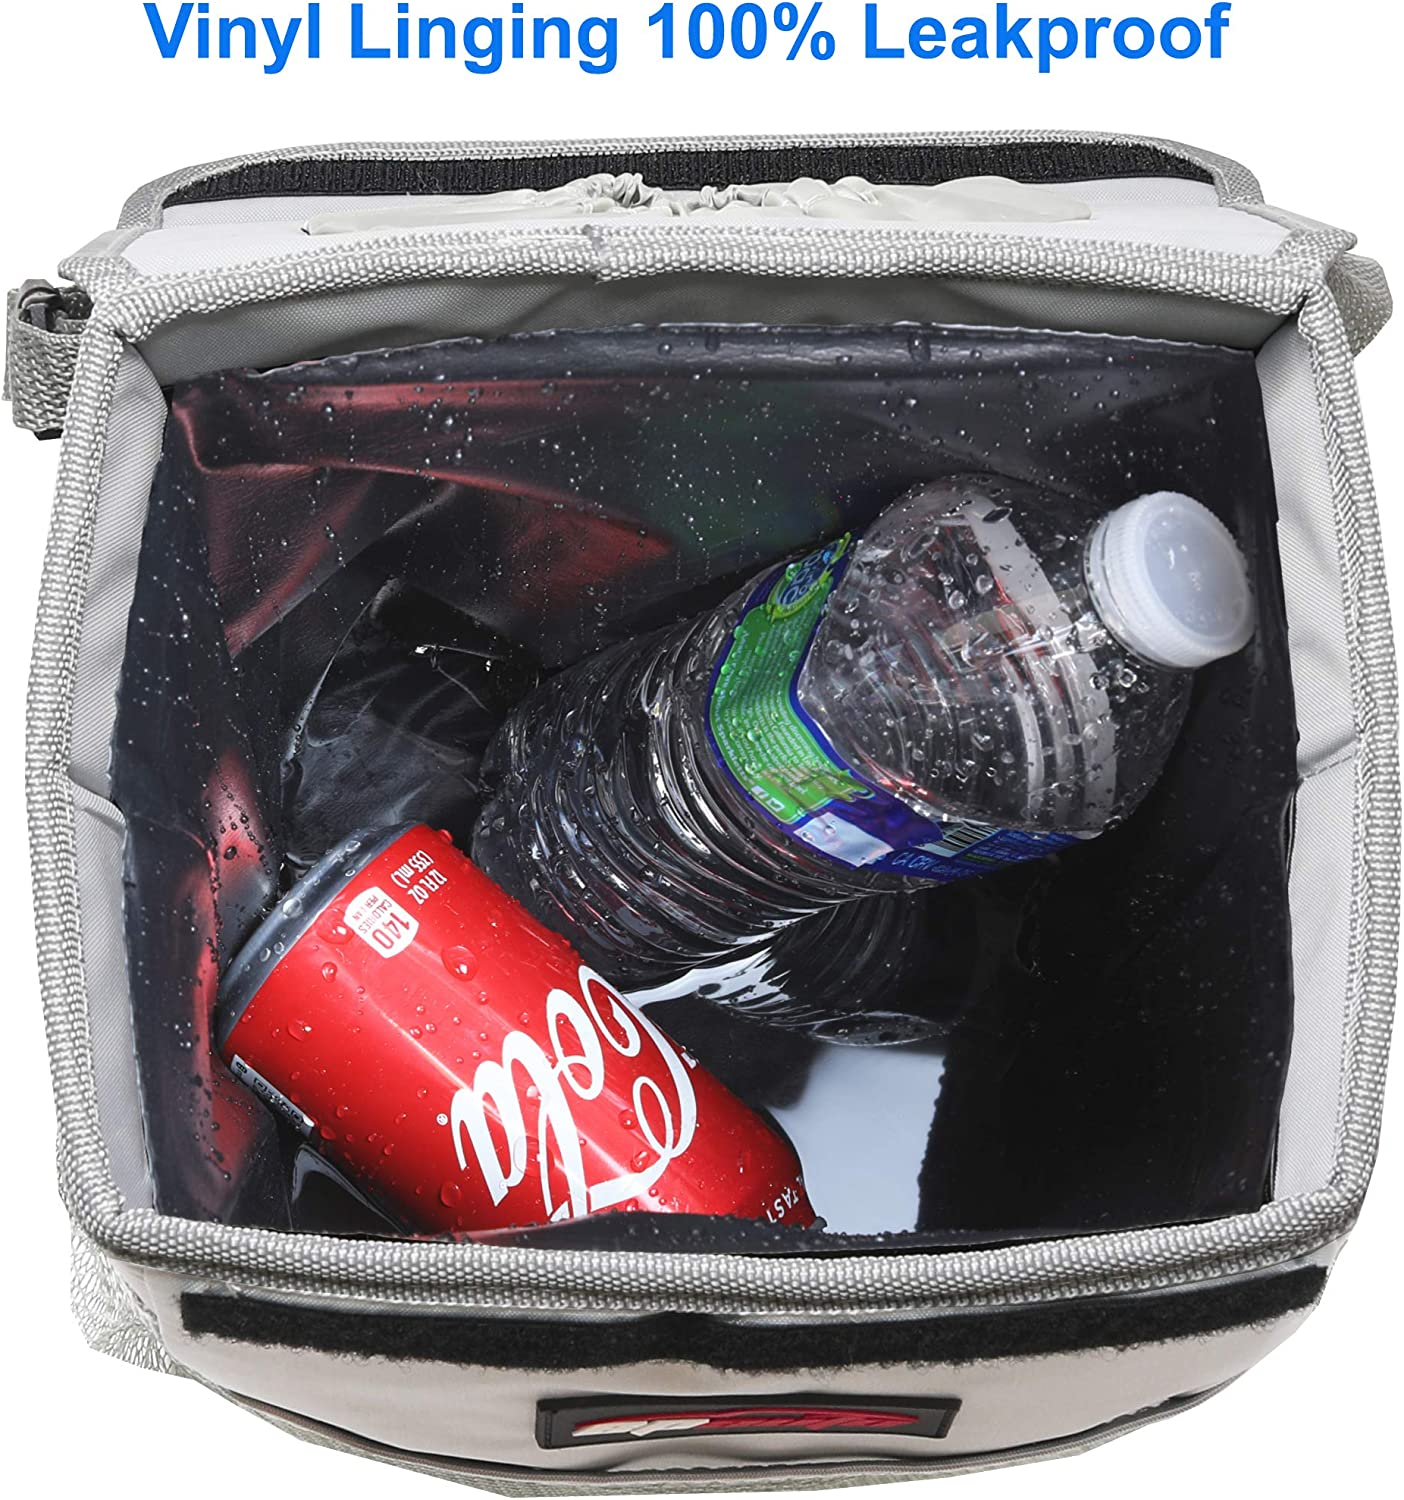 Pink EPAuto Waterproof Car Trash Can with Lid and Storage Pockets